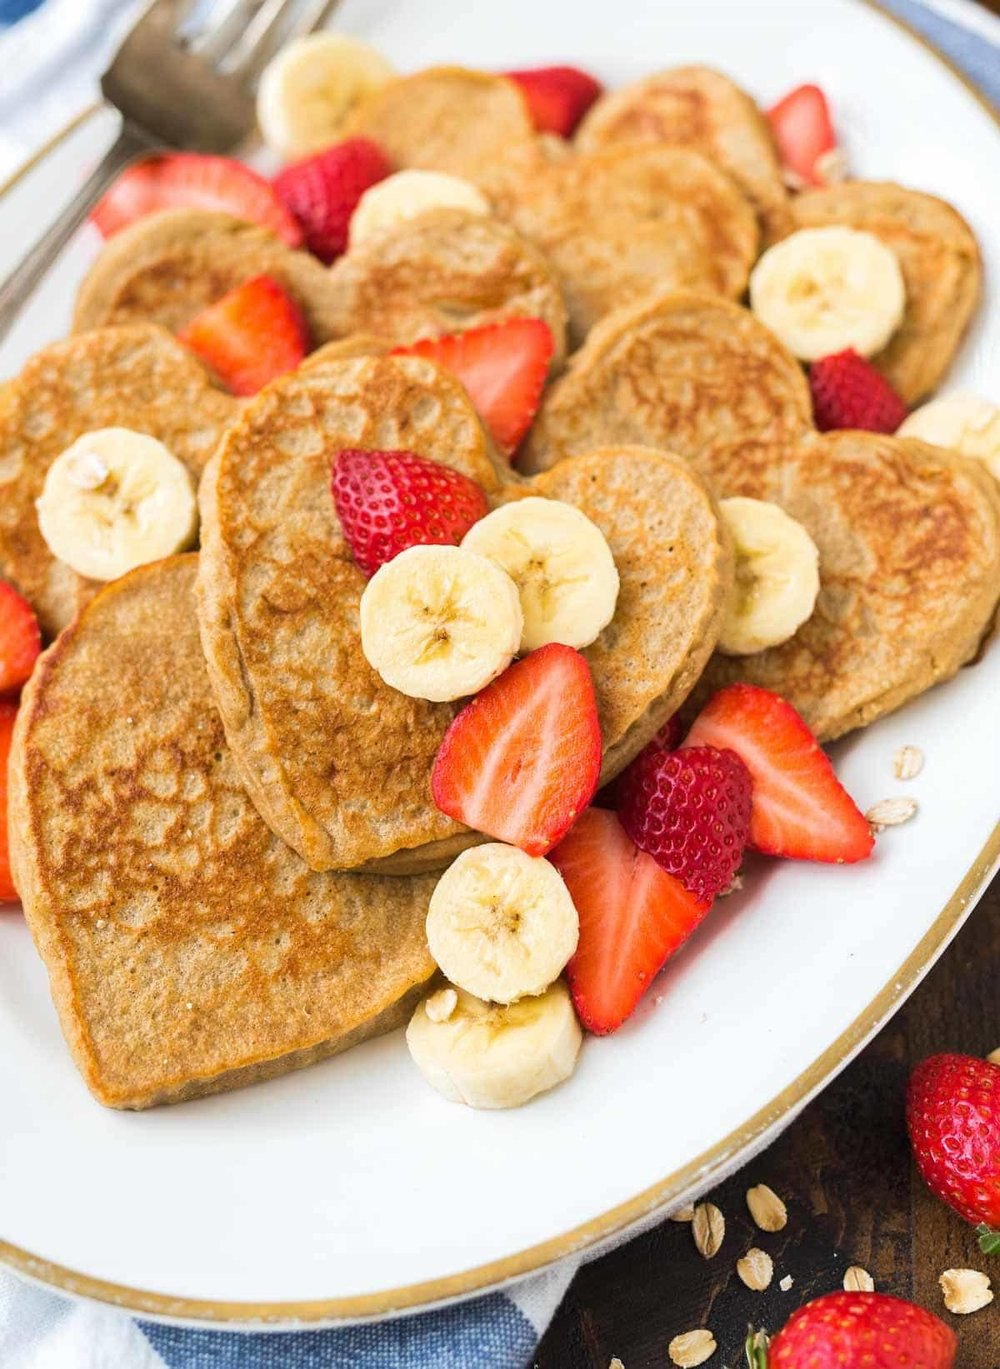 Banana-Pancakes-Healthy-Recipe.jpg